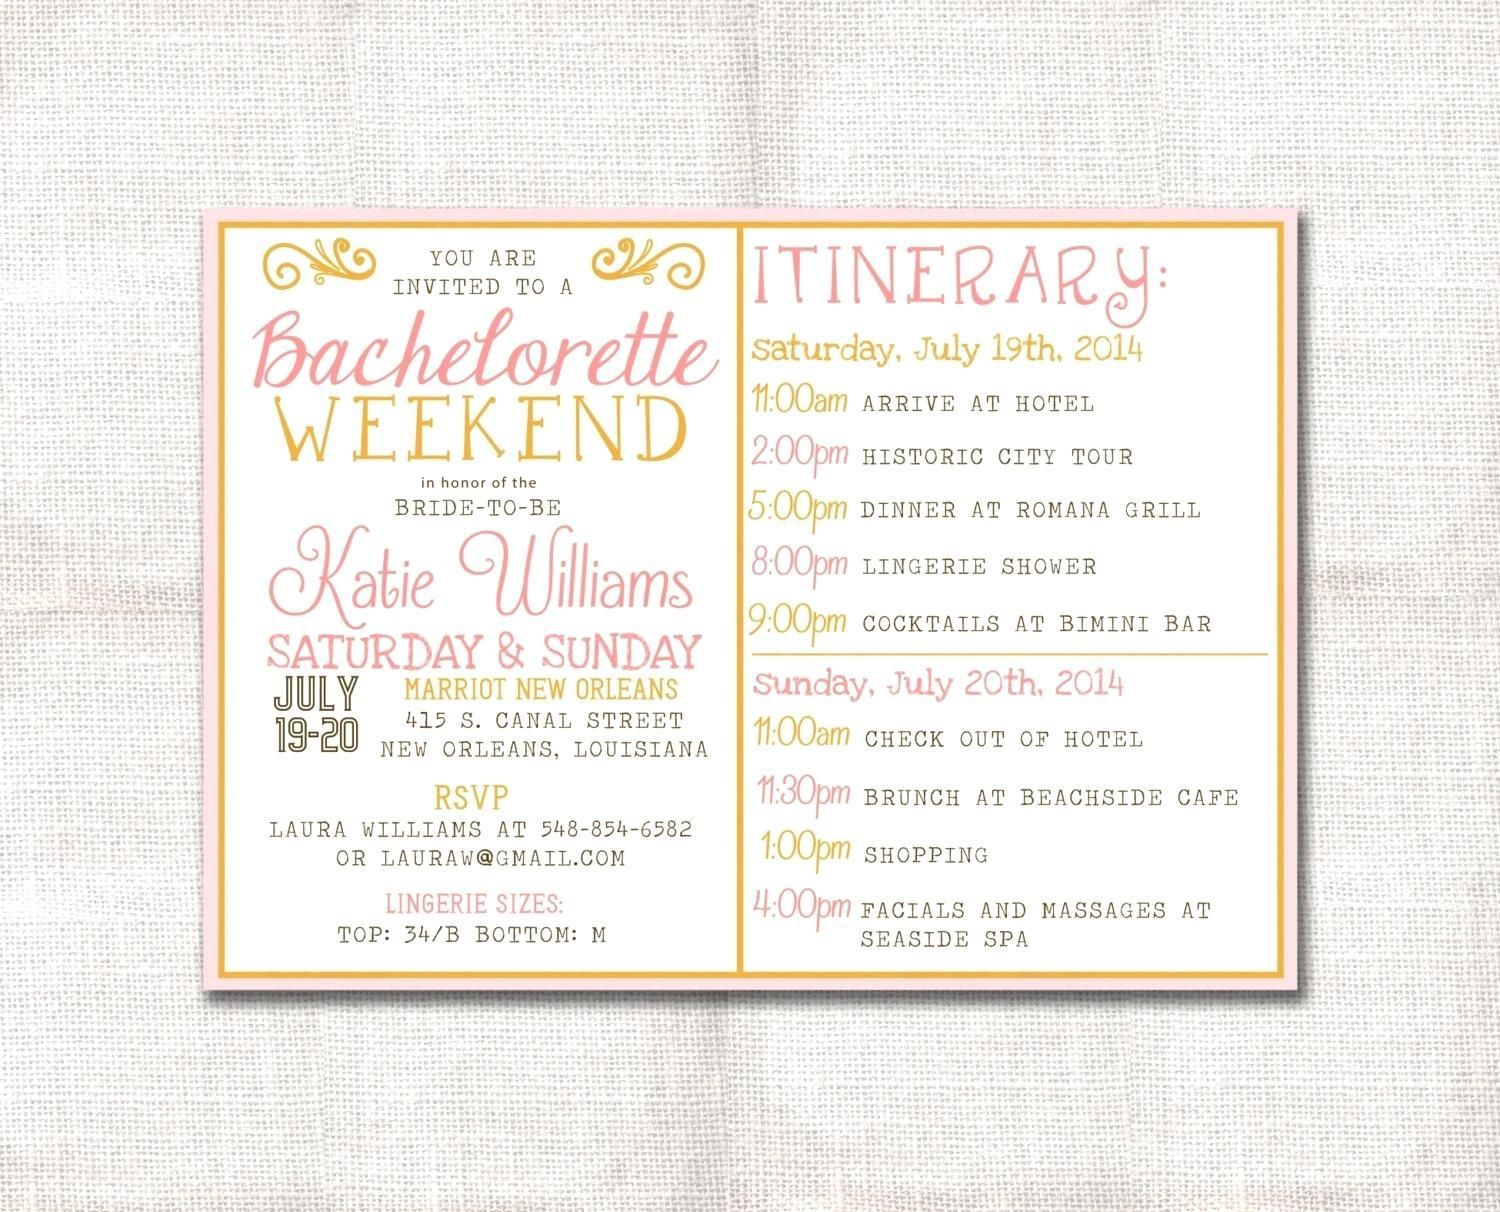 004 Breathtaking Bachelorette Itinerary Template Free Image  Party Editable DownloadFull